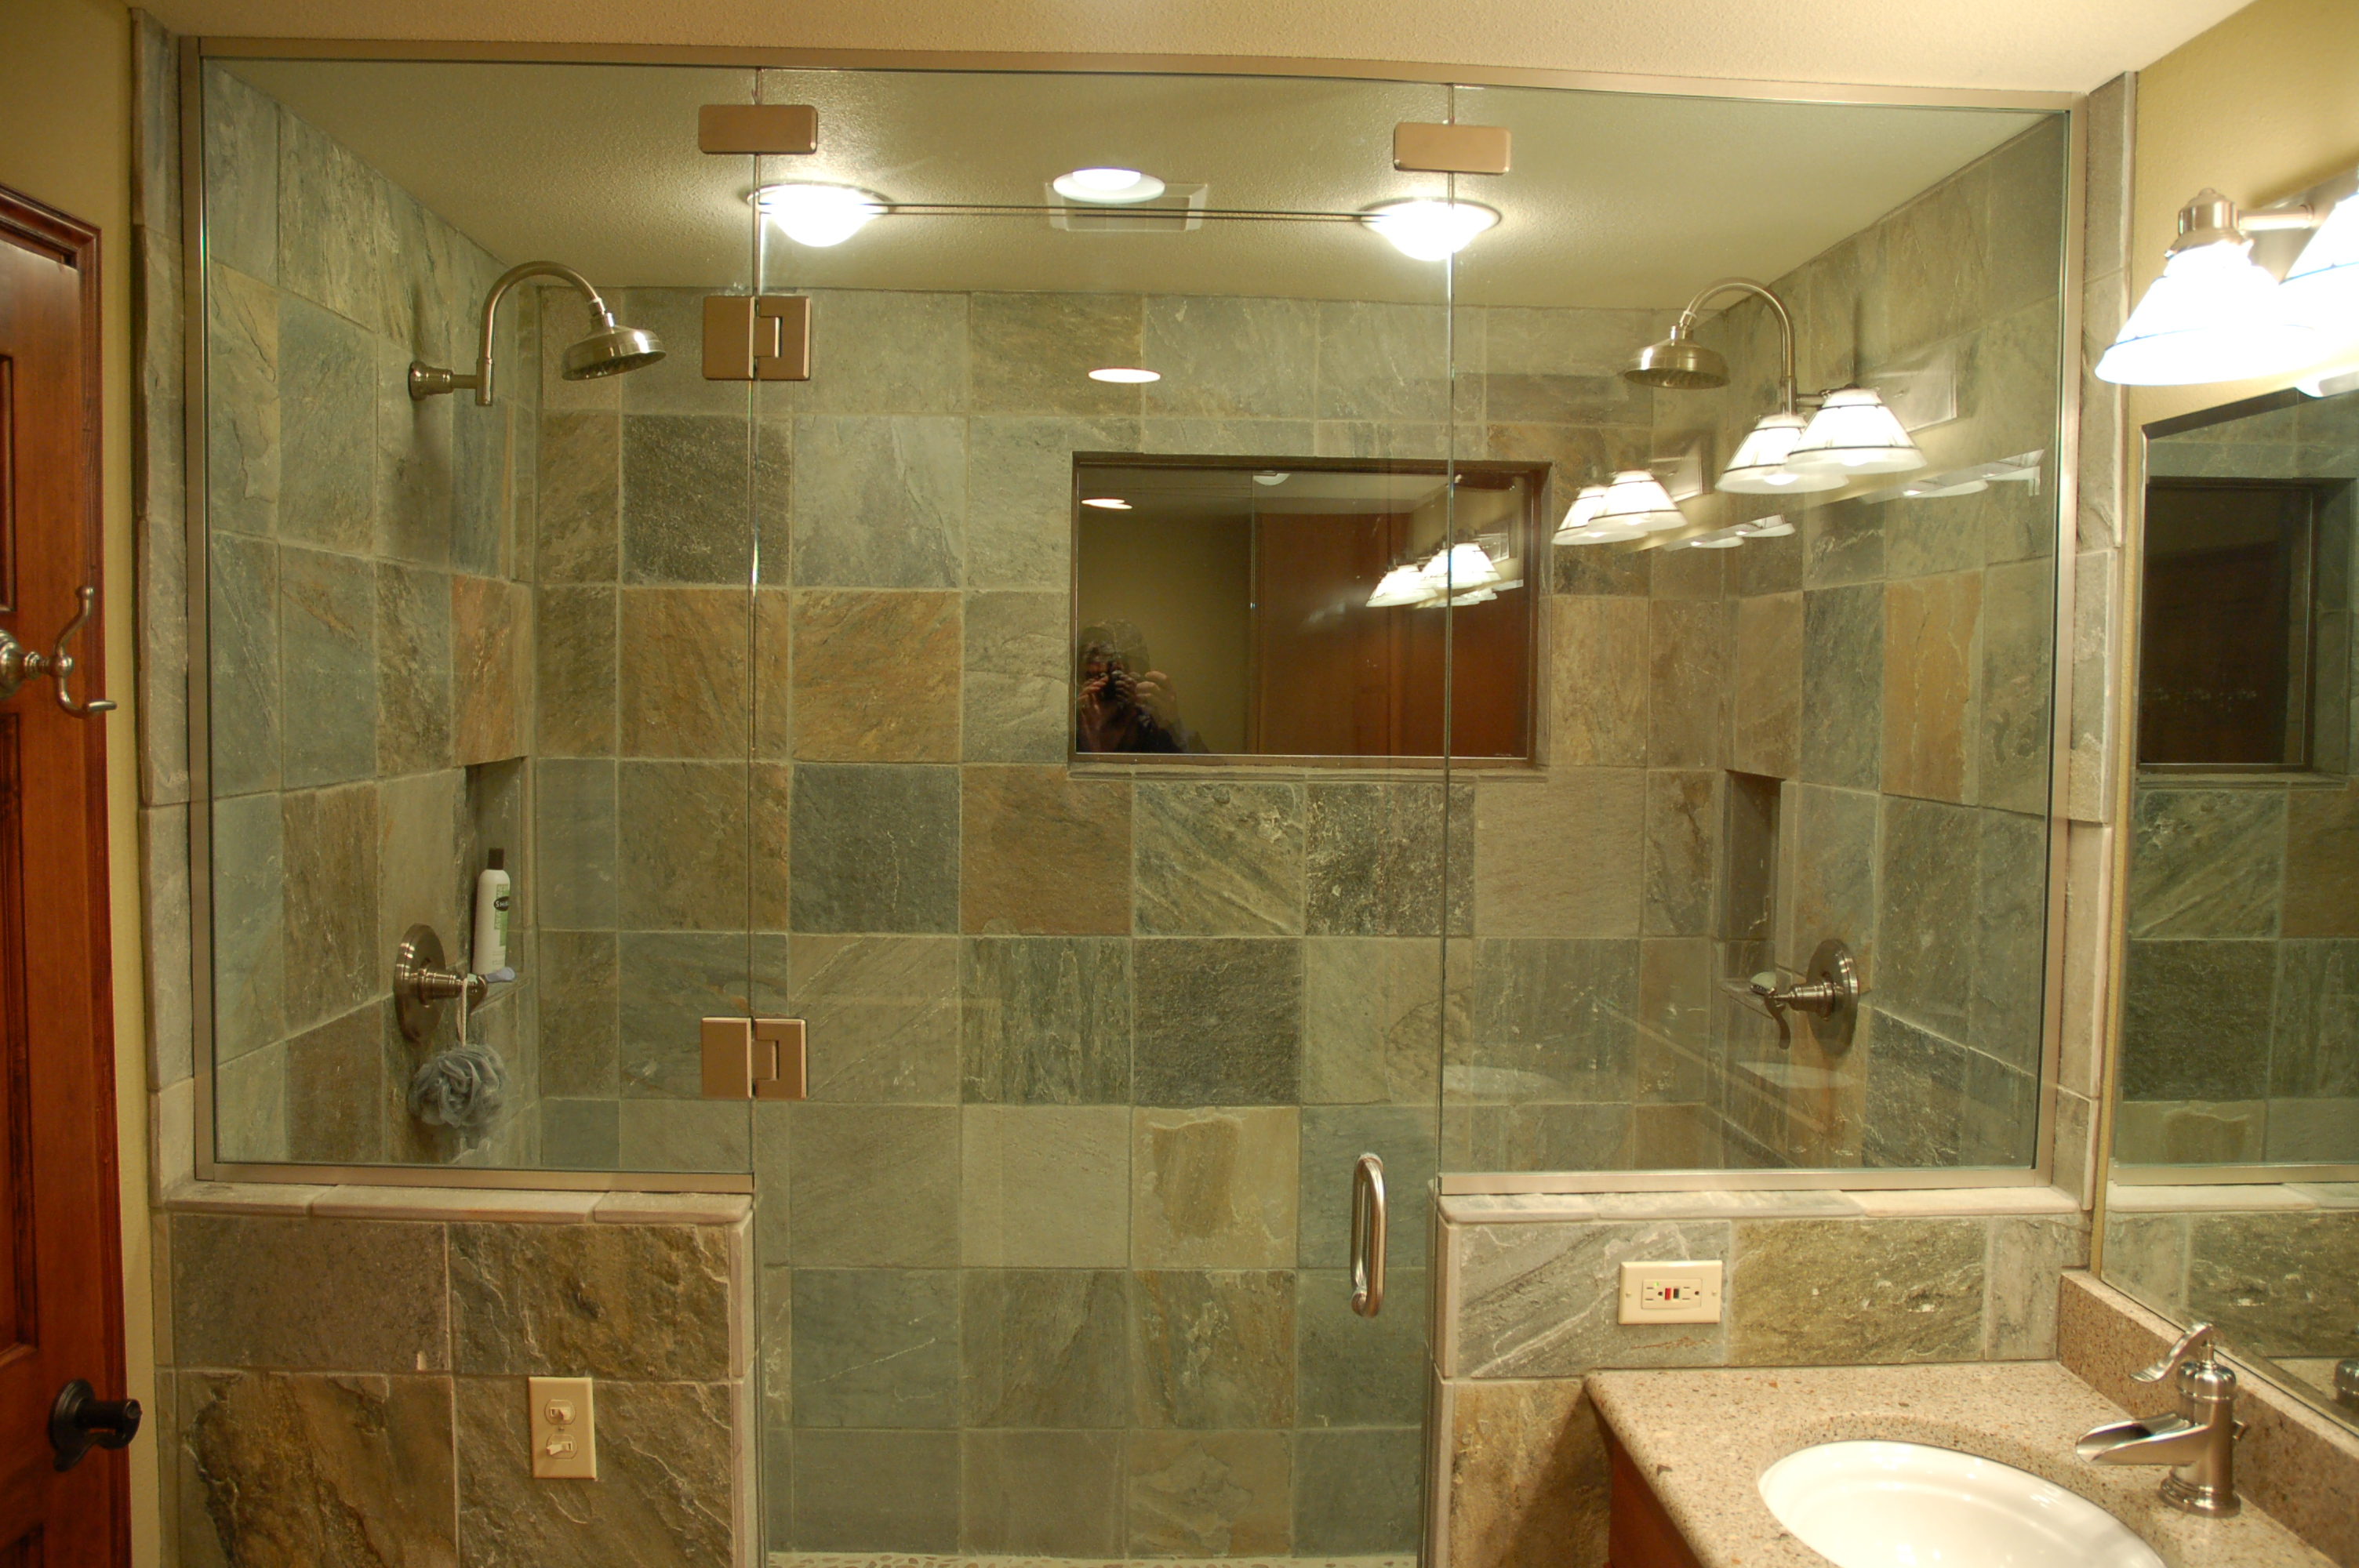 Slate bathroom tile benefits bathroom slate tiles for Tile designs for bathroom